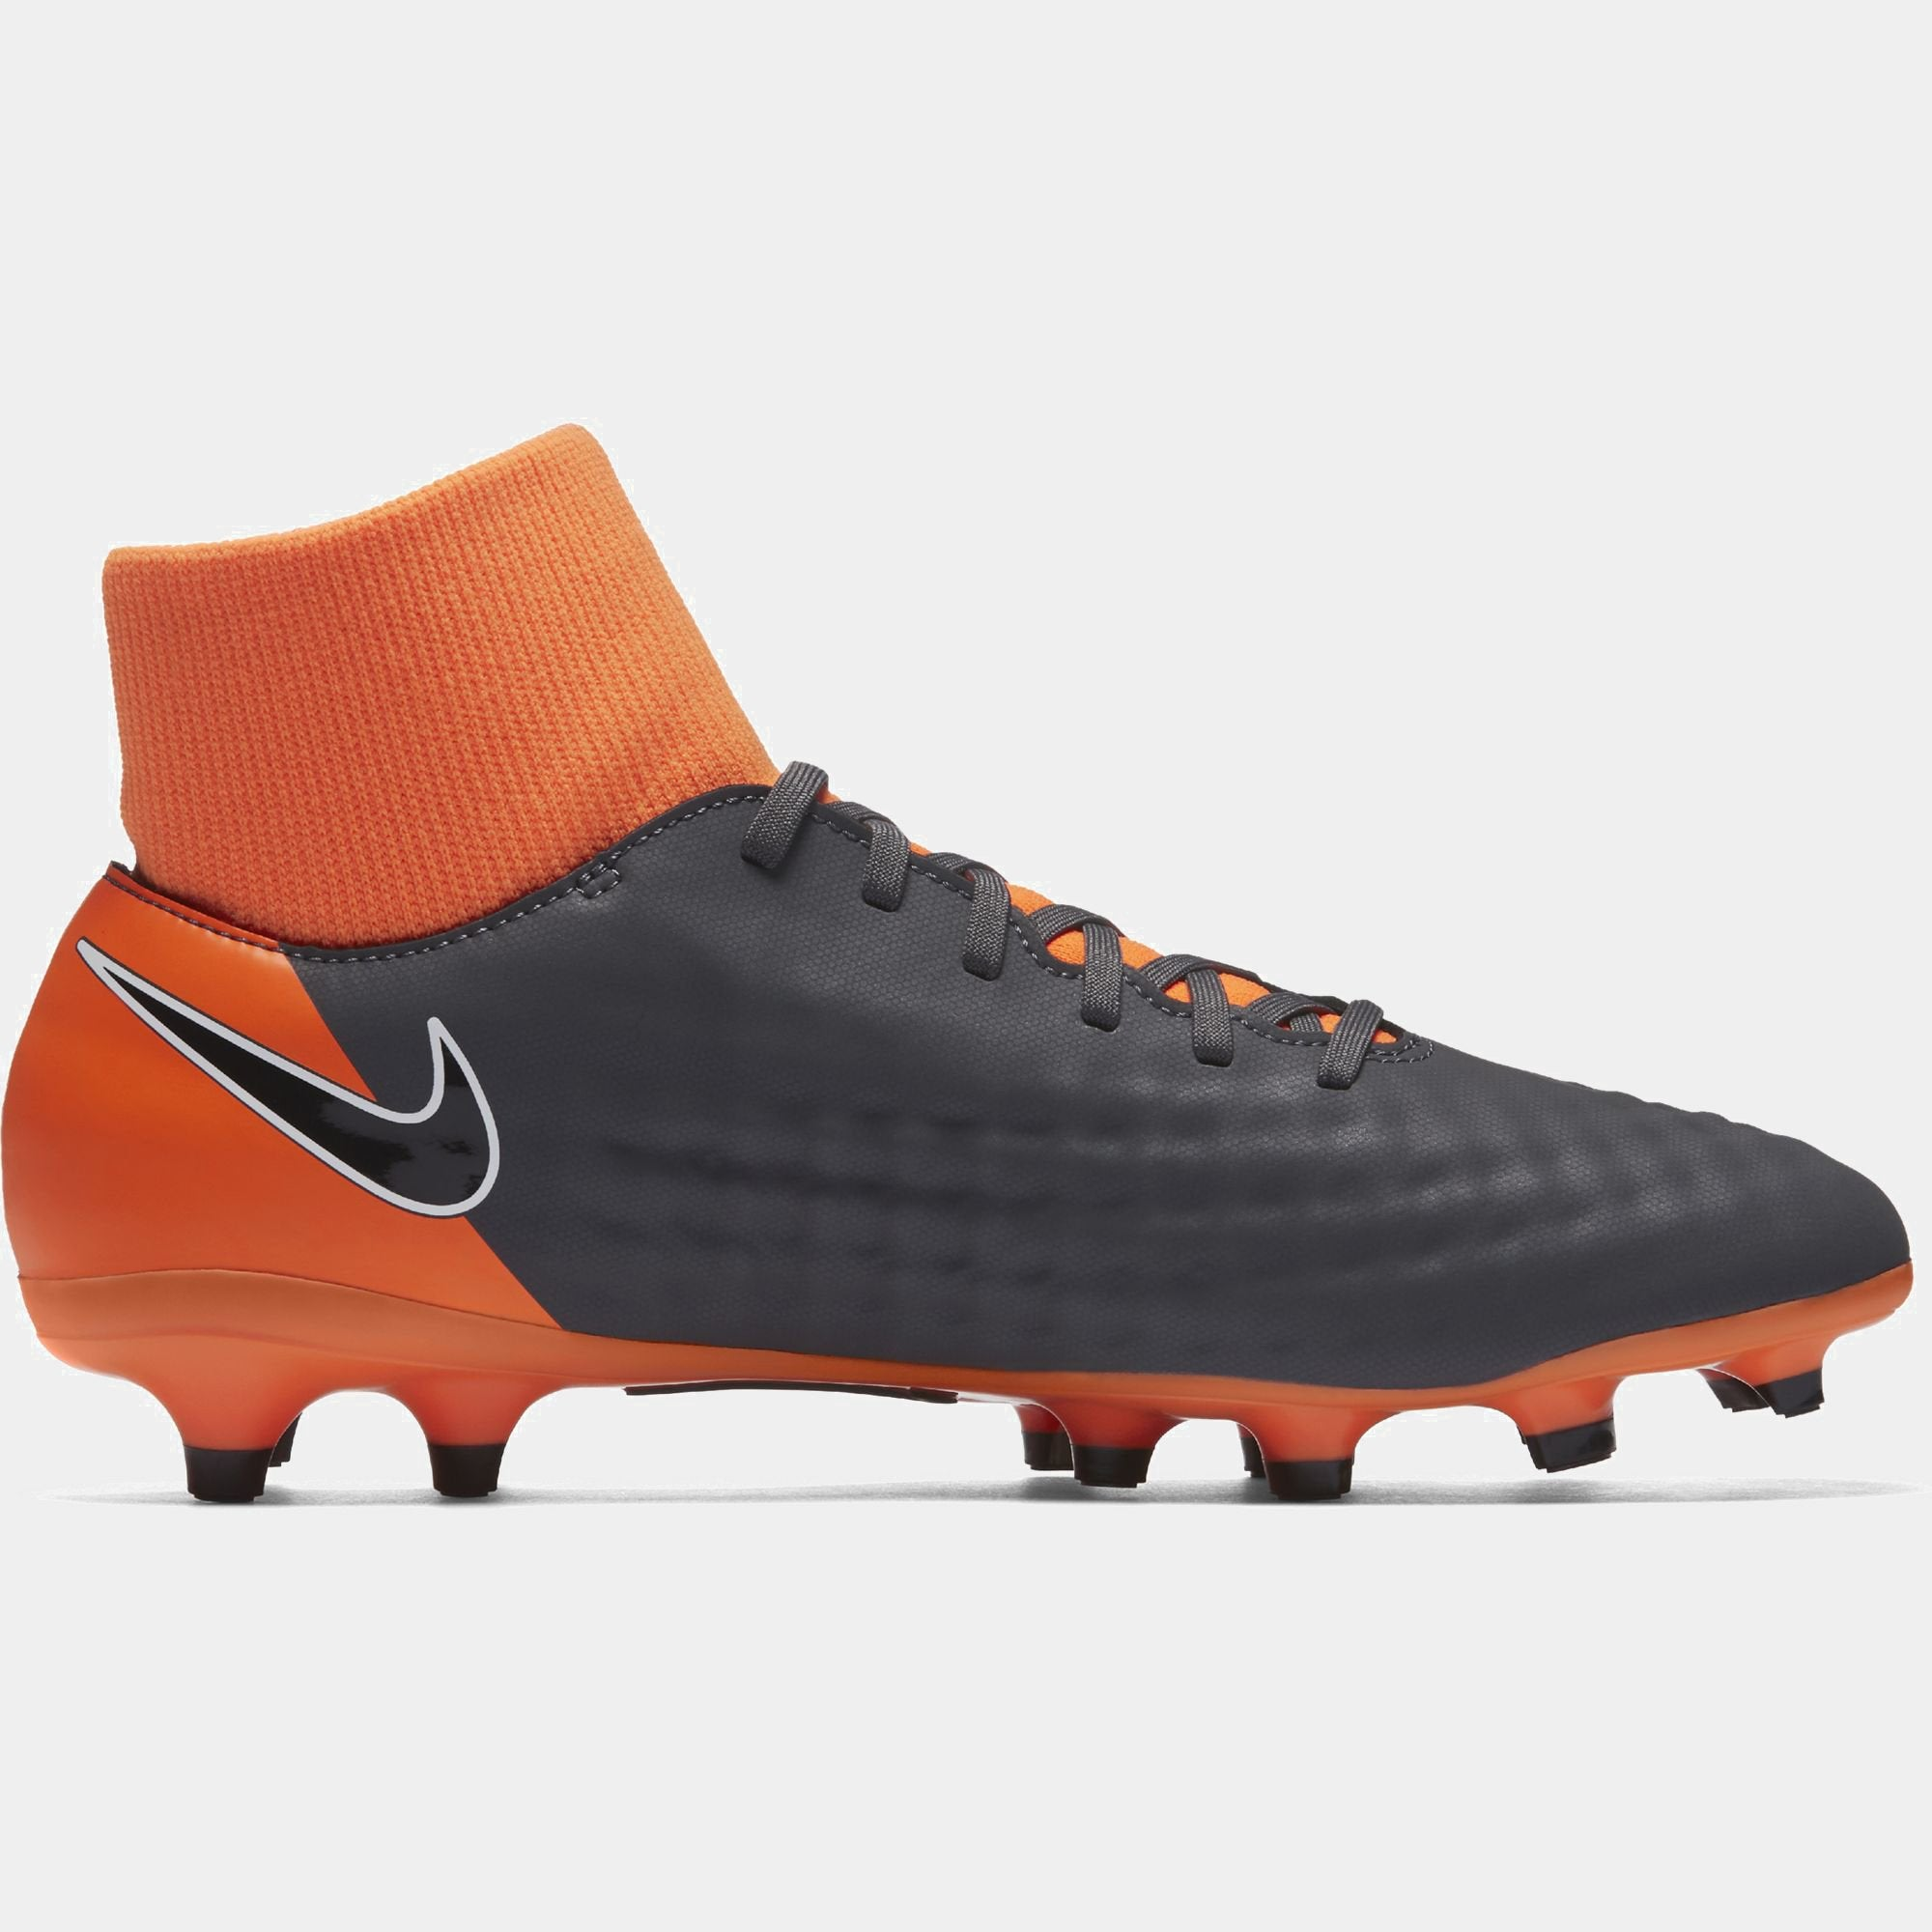 adee3f6c921 Men s Nike Obra 2 Academy Dynamic Fit (FG) Firm-Ground Football Boot –  Branded Feet